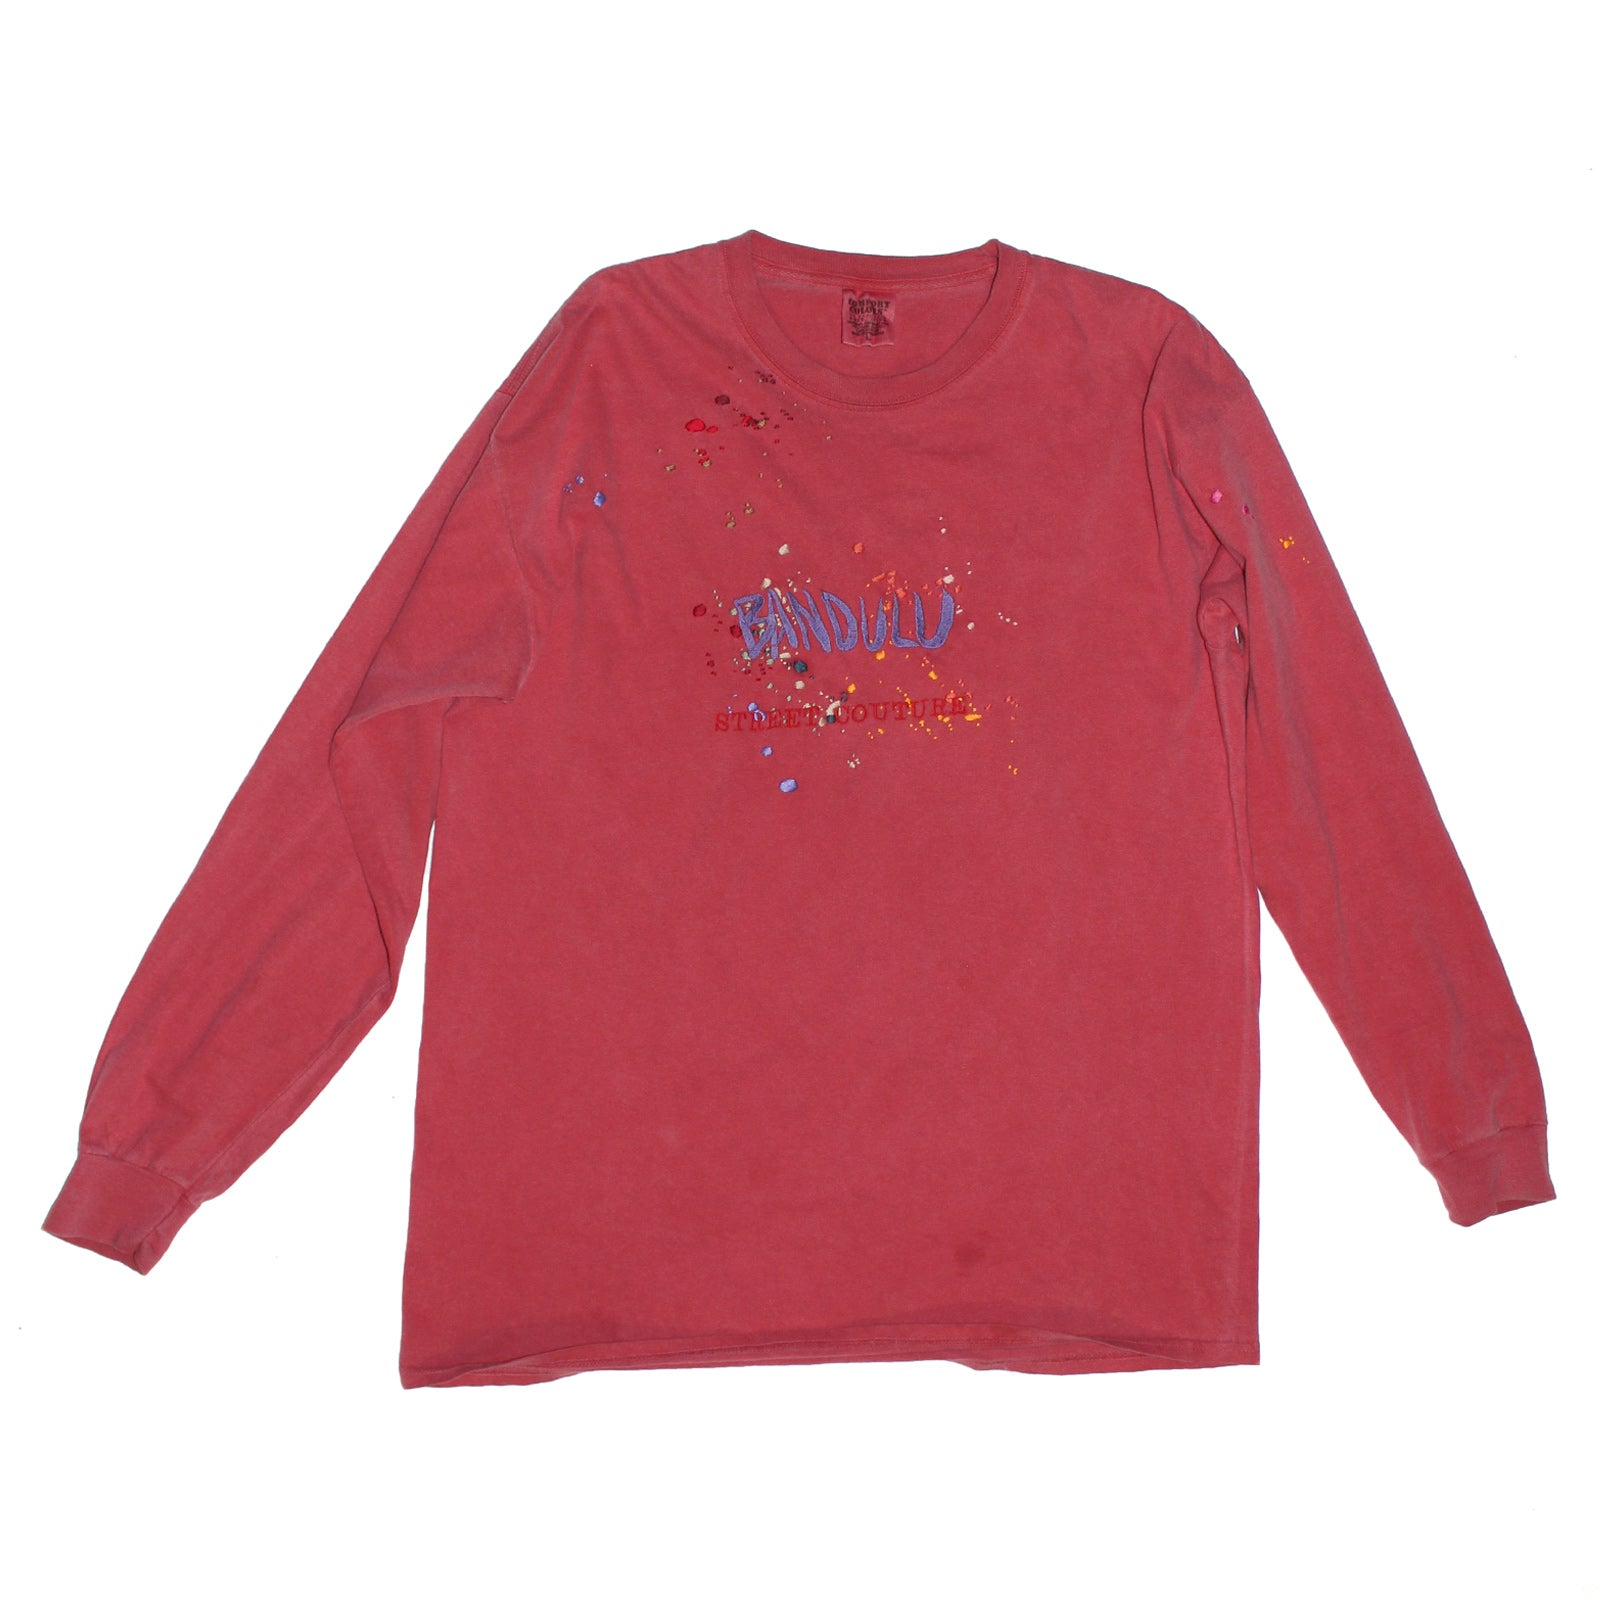 "BANDULU ""CT CRAWDAD"" SECOND HAND LONGSLEEVE"